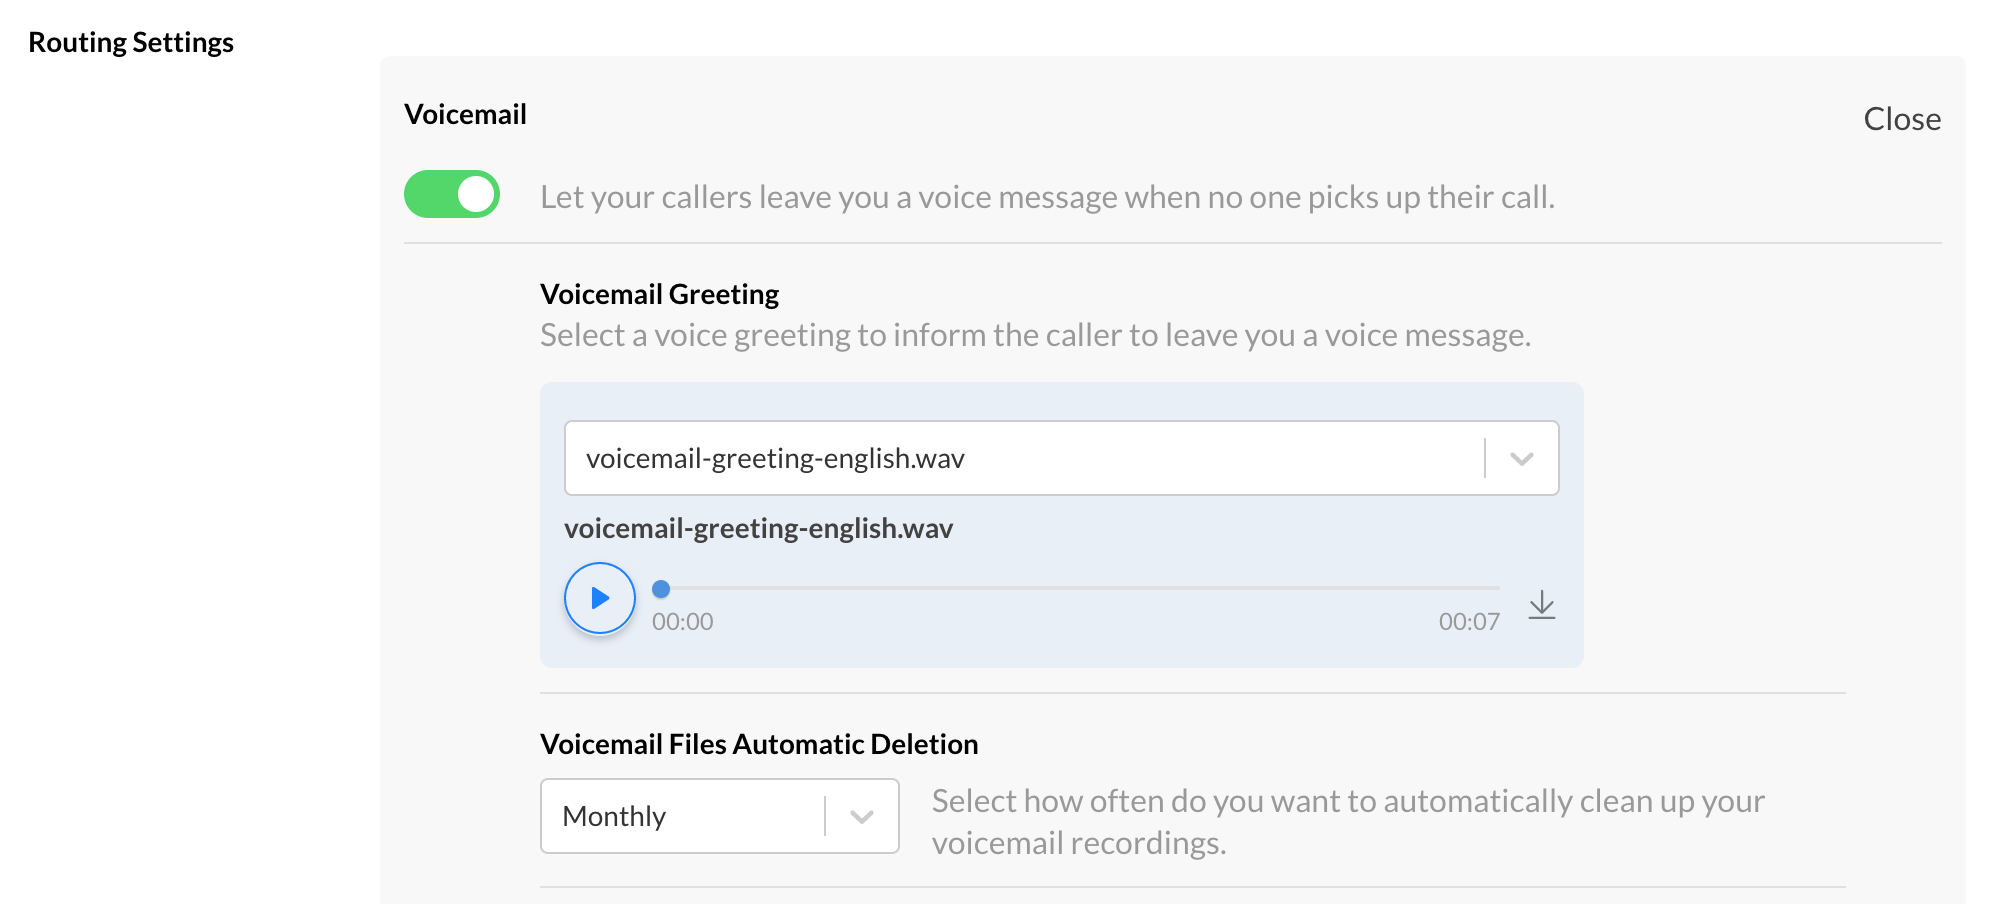 Enable Voicemail